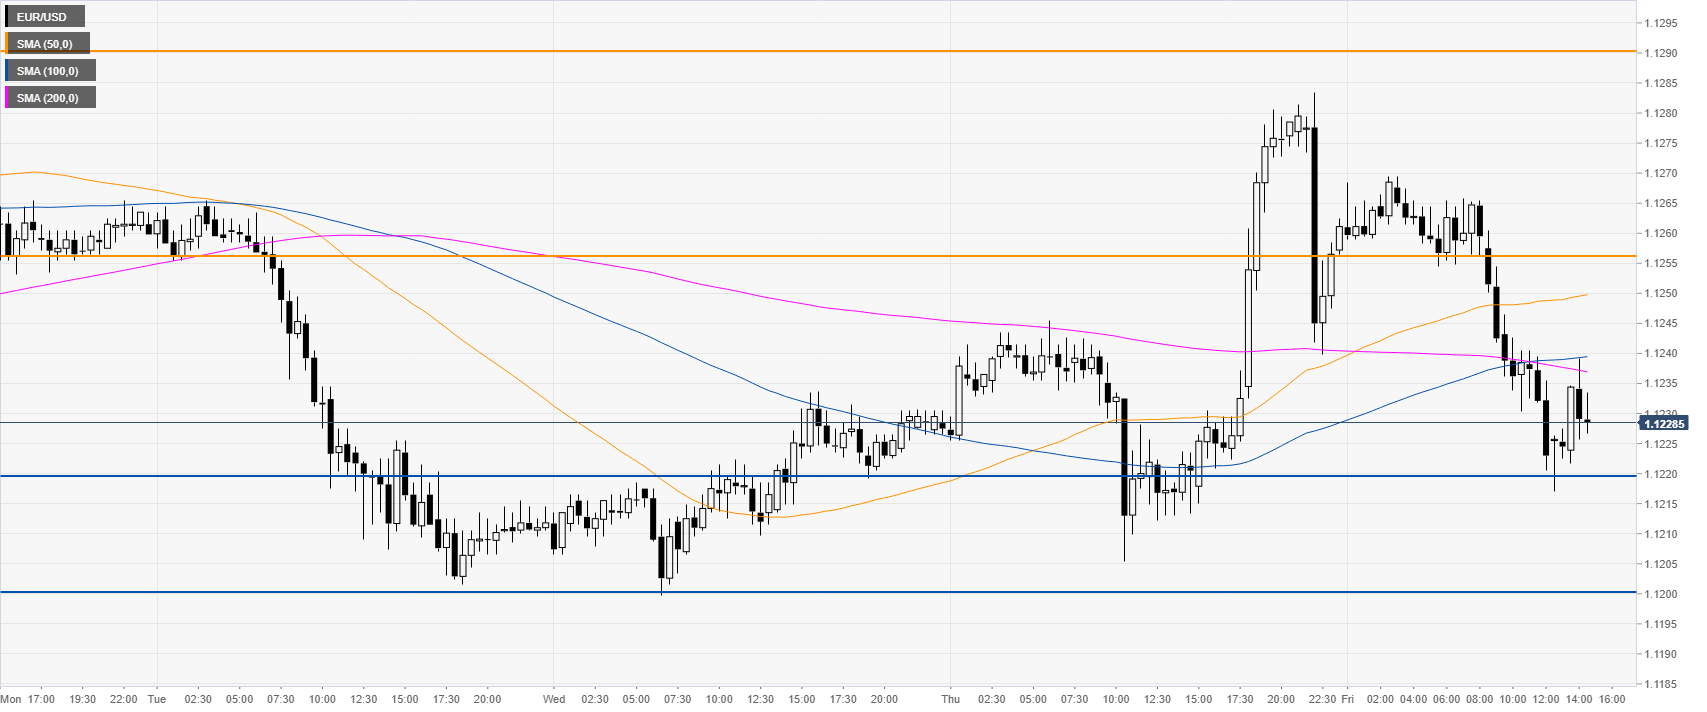 EUR/USD techncial analysis: Fiber near daily lows and 1 1220 post